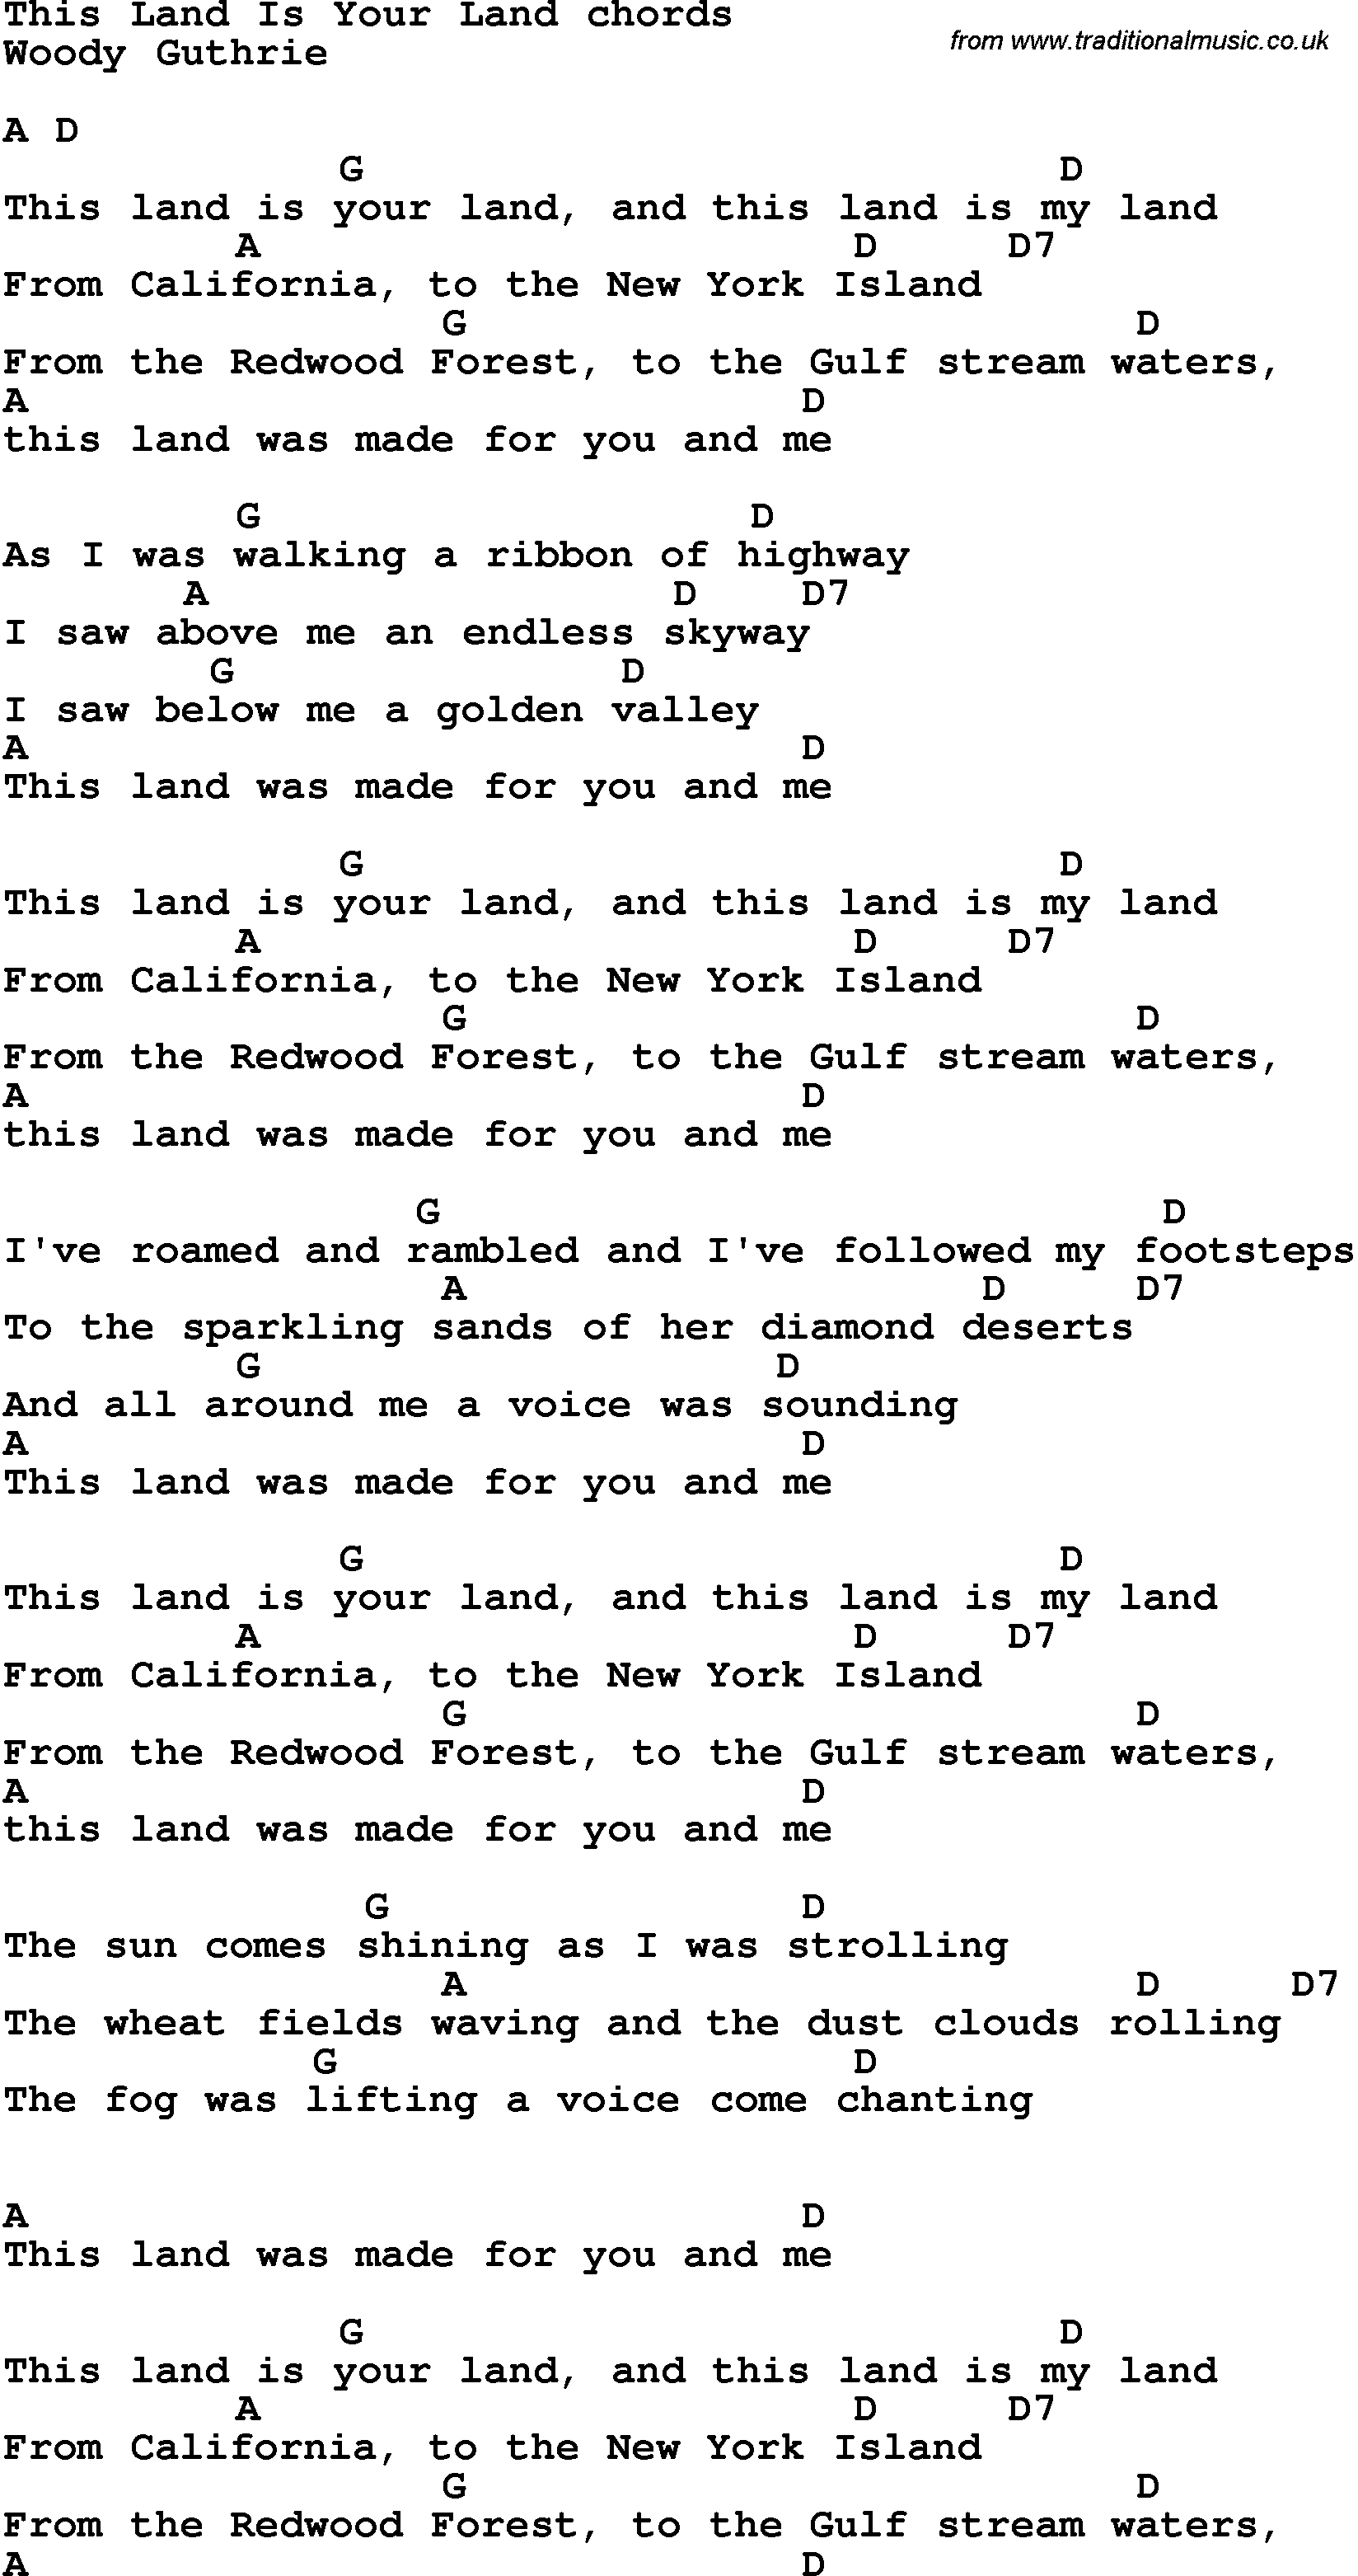 Song lyrics with guitar chords for this land is your land song lyrics with guitar chords for this land is your land hexwebz Image collections